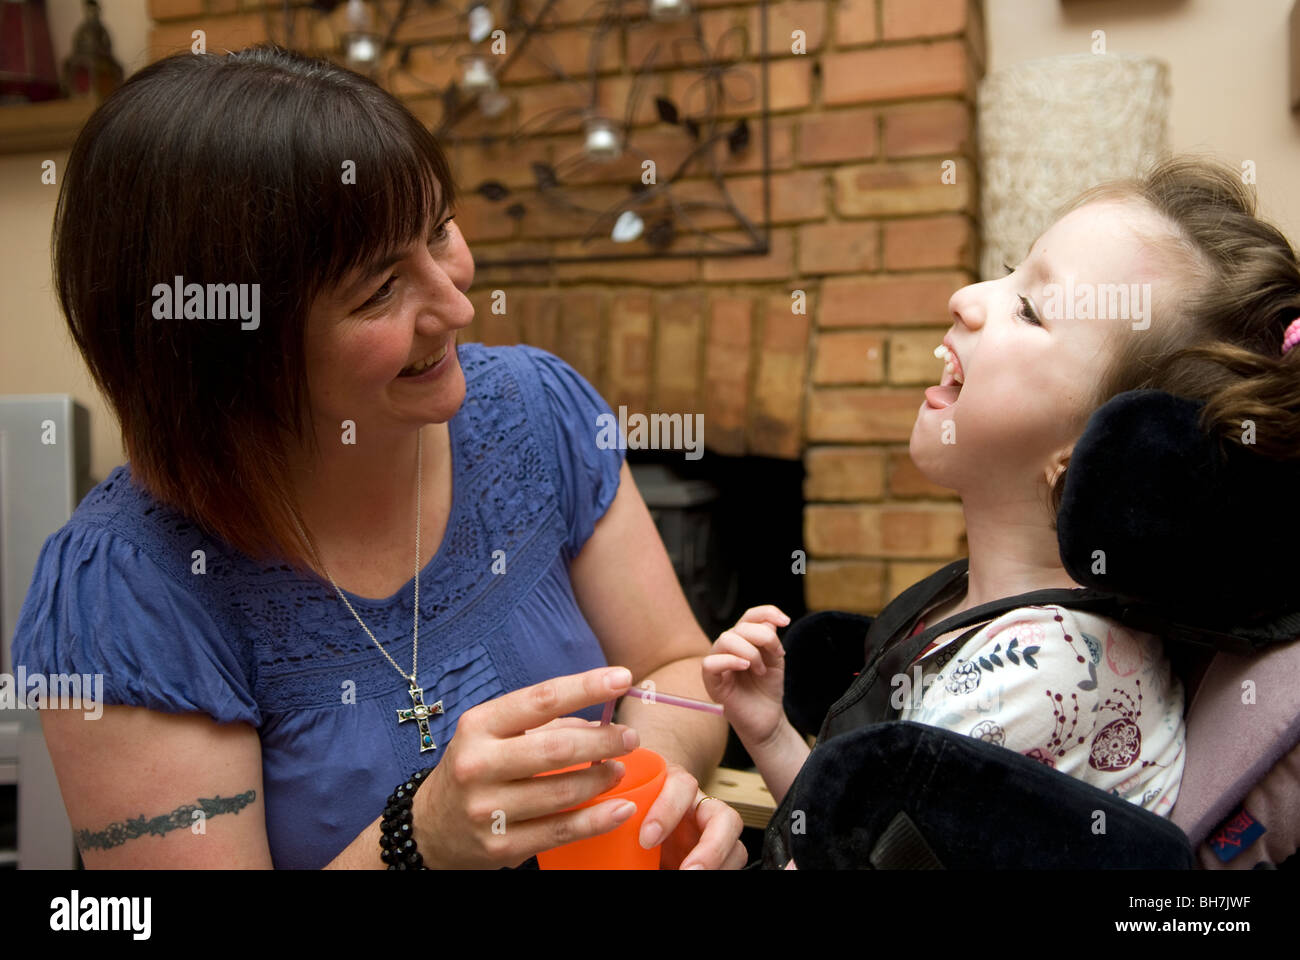 Mother with her disabled daughter (cerebral palsy), Luton, UK. - Stock Image